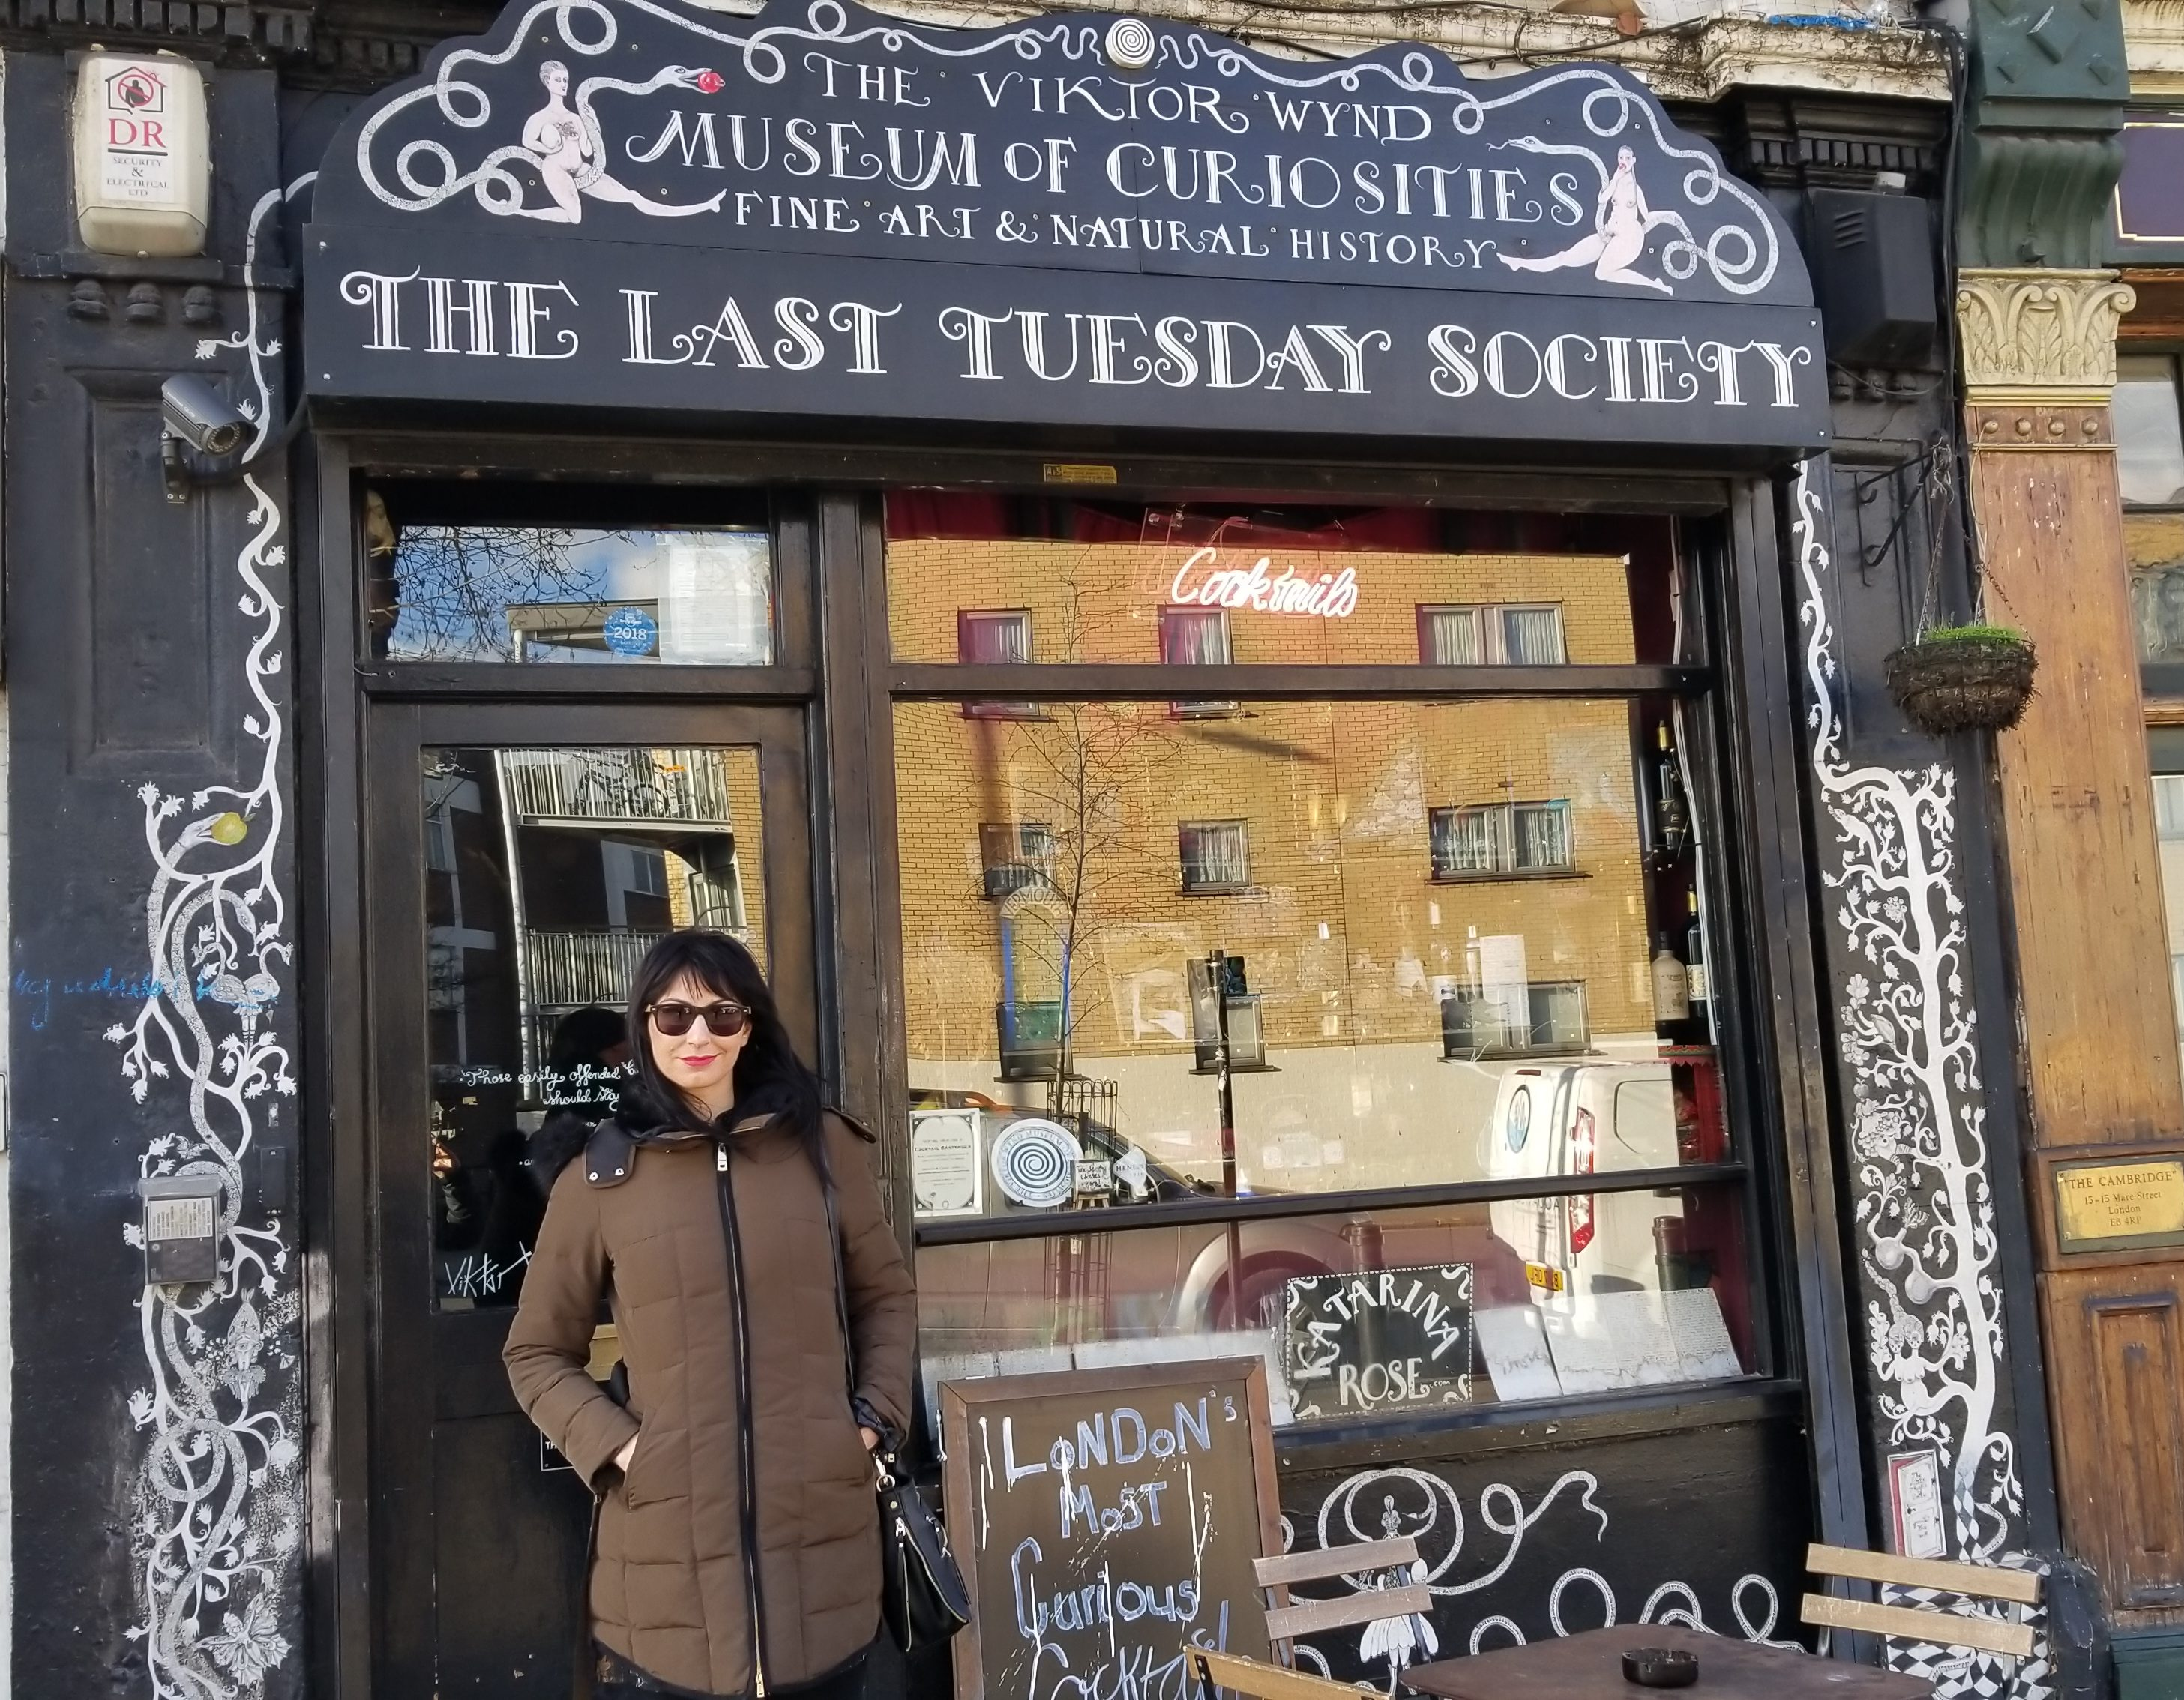 the Last Tuesday Society and Viktor Wynd Museum of Curiosities